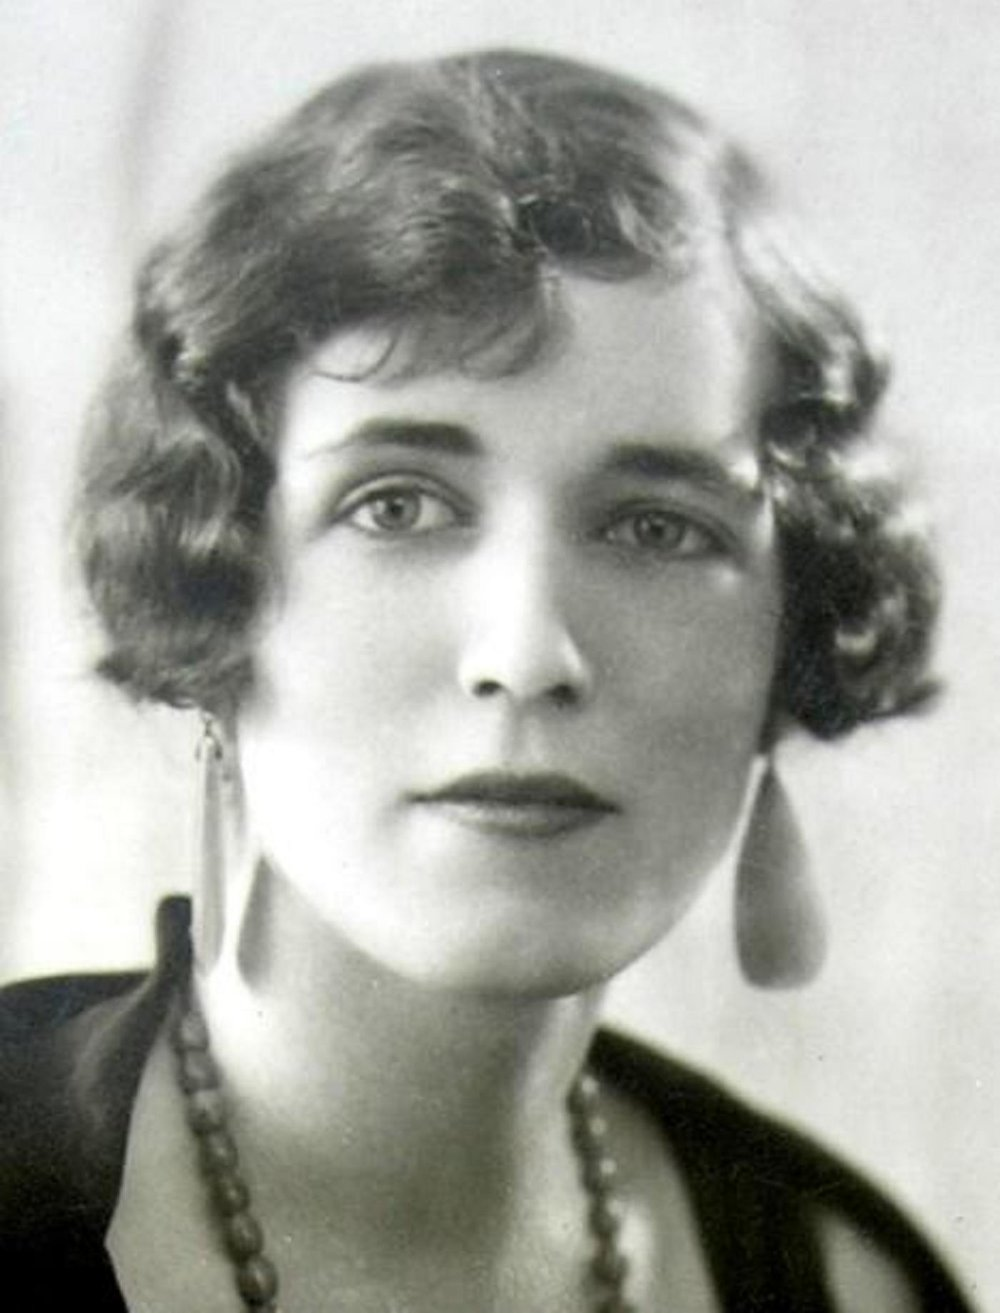 georgette-heyer face.jpg